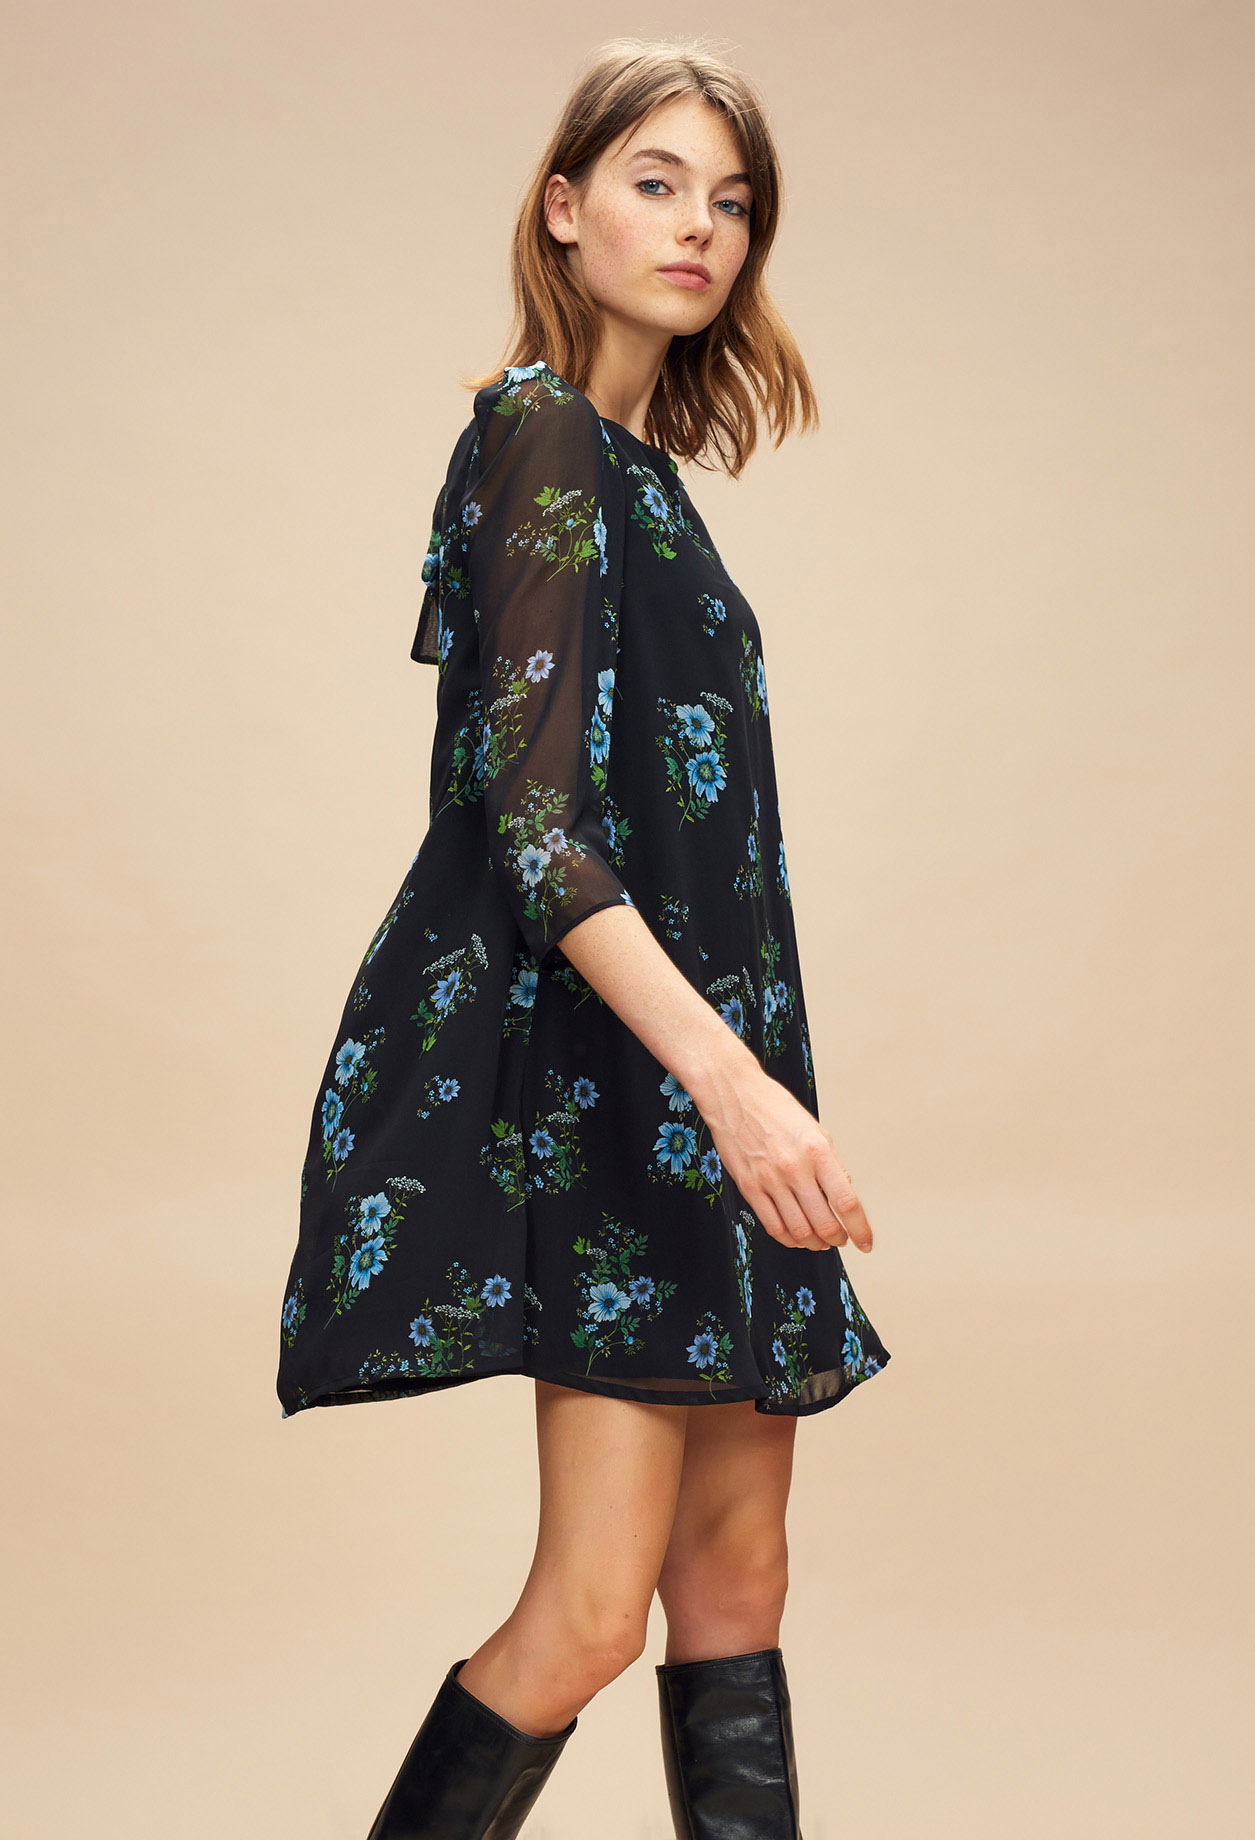 c&t rififi ophelia dress